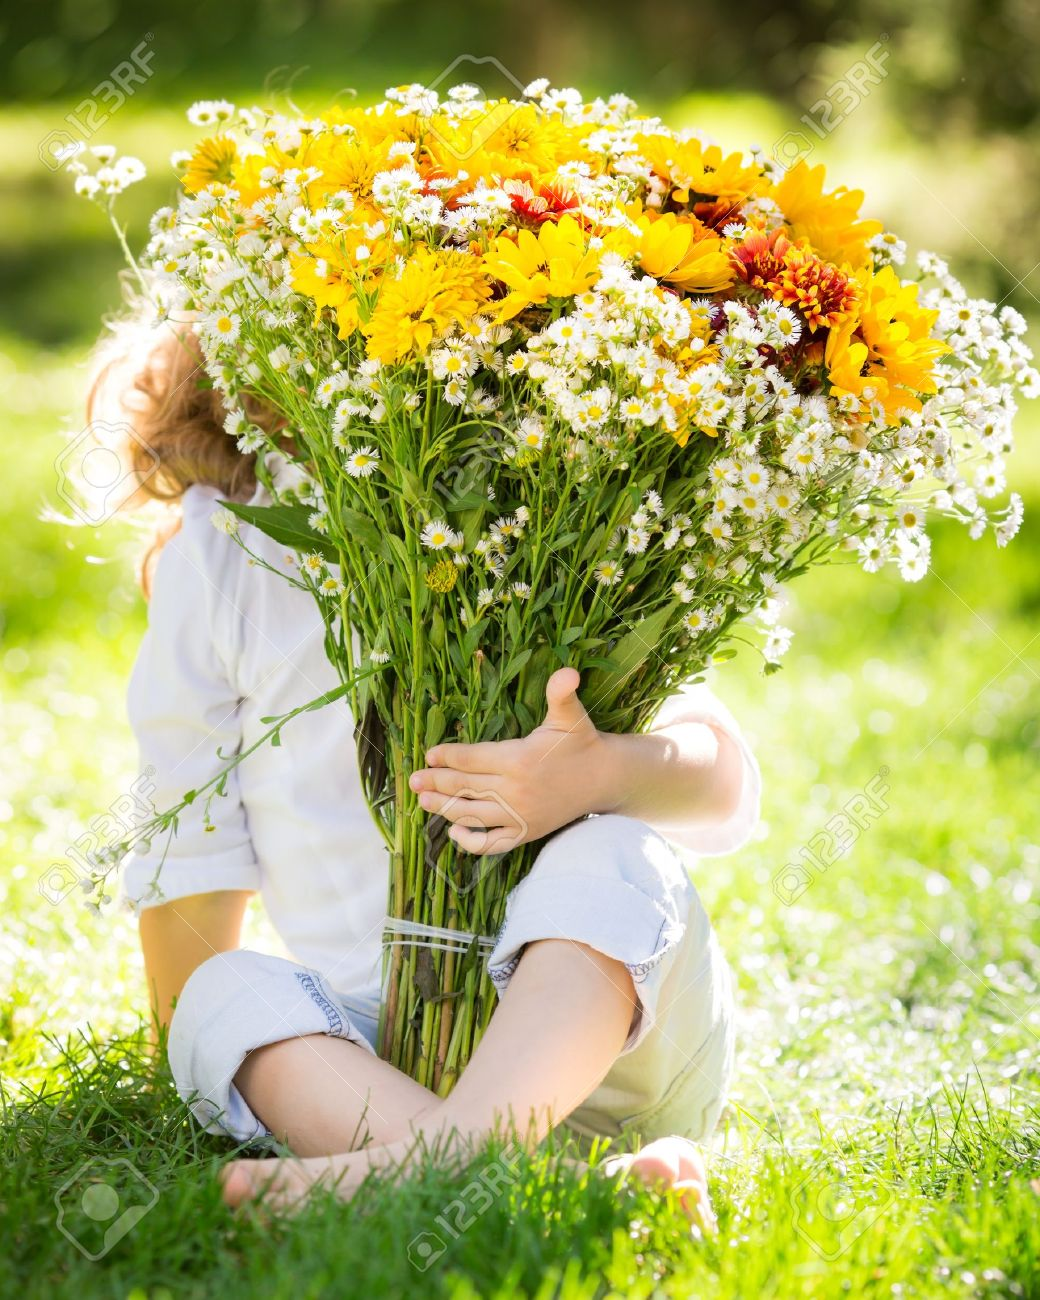 Child hiding behind big bouquet of spring flowers outdoors stock child hiding behind big bouquet of spring flowers outdoors stock photo 17347879 mightylinksfo Images